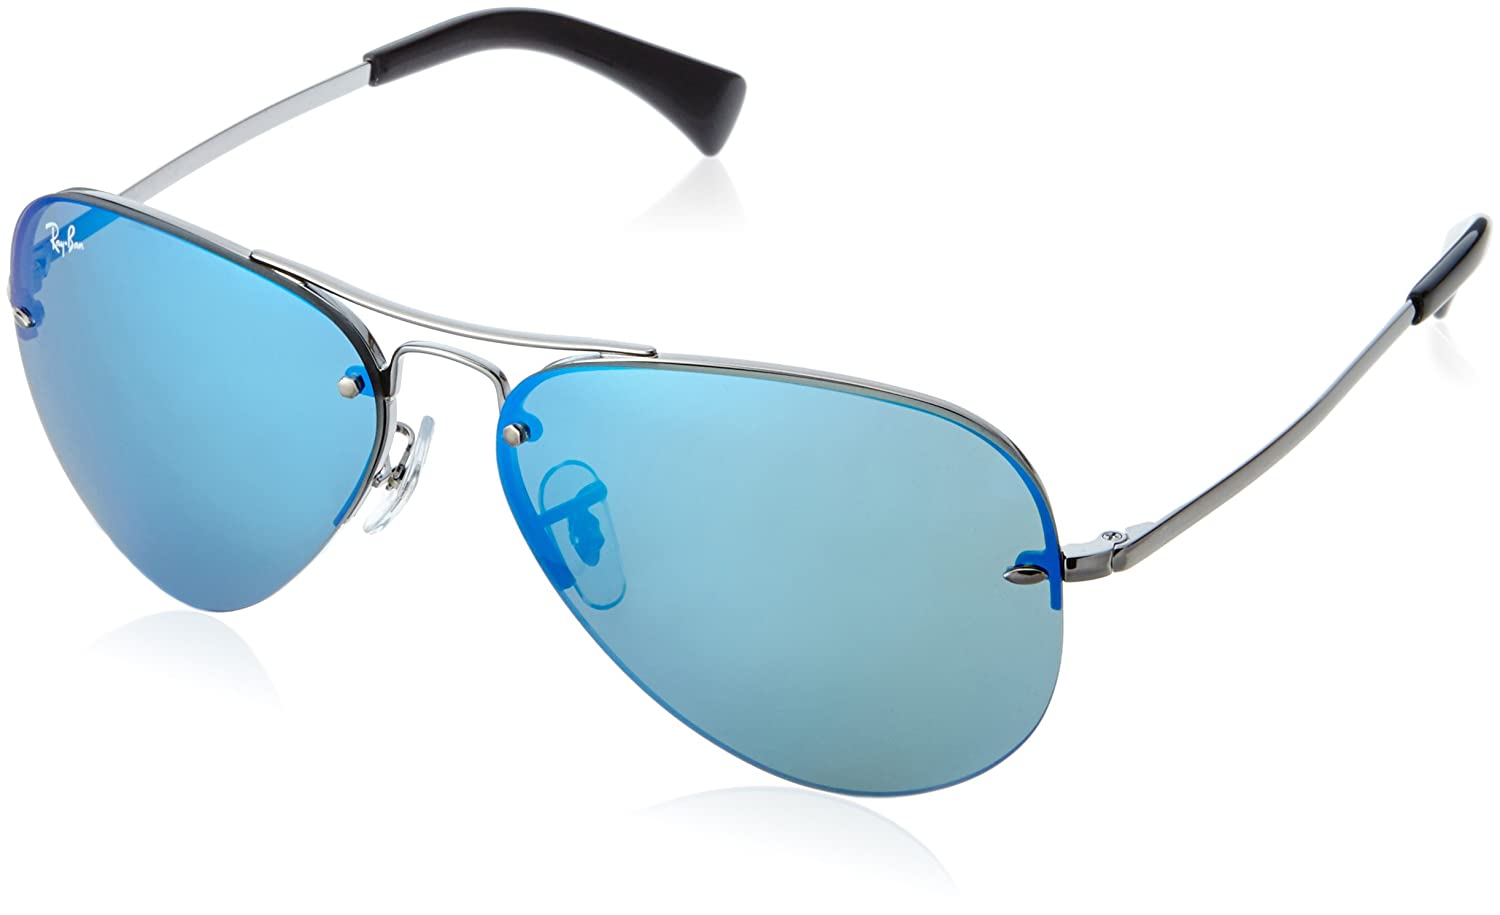 205cd5e79a Ray-Ban Mirrored Aviator Men s Sunglasses (0RB3449004 5559 Blue)   Amazon.in  Clothing   Accessories